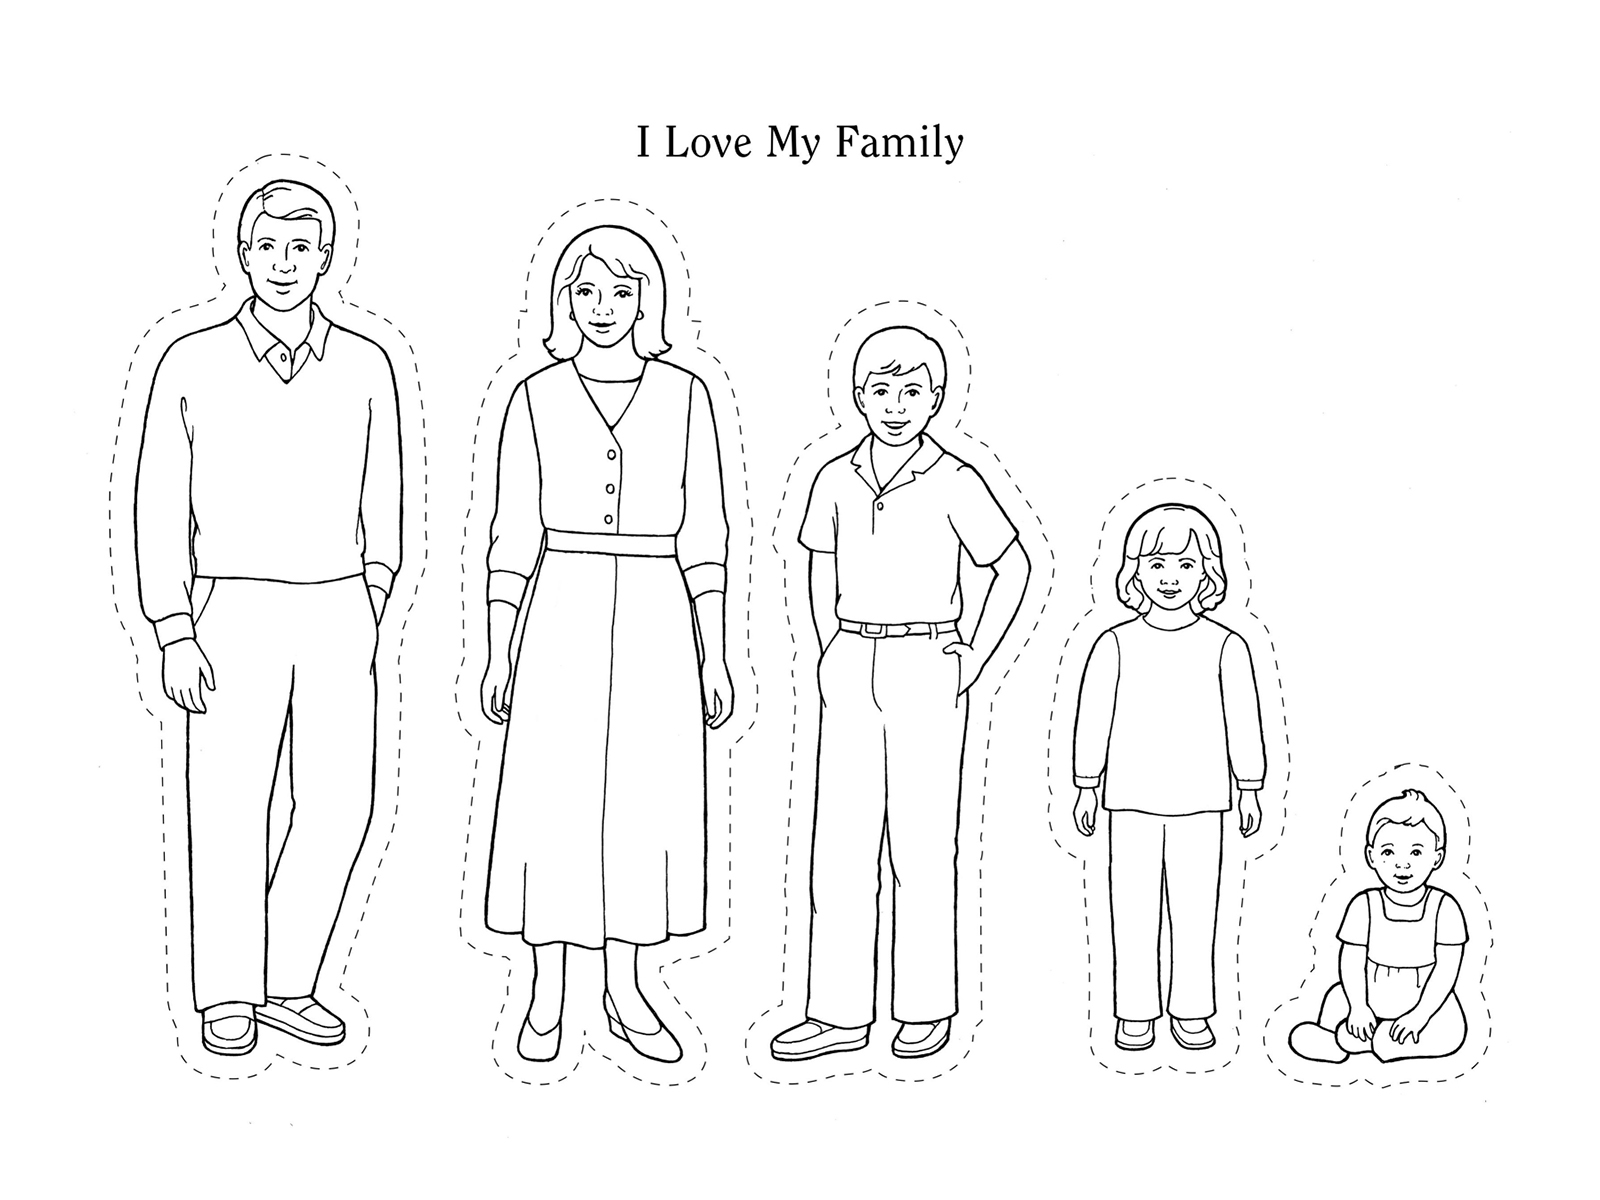 Nursery Manual Page 51: I Love My Family